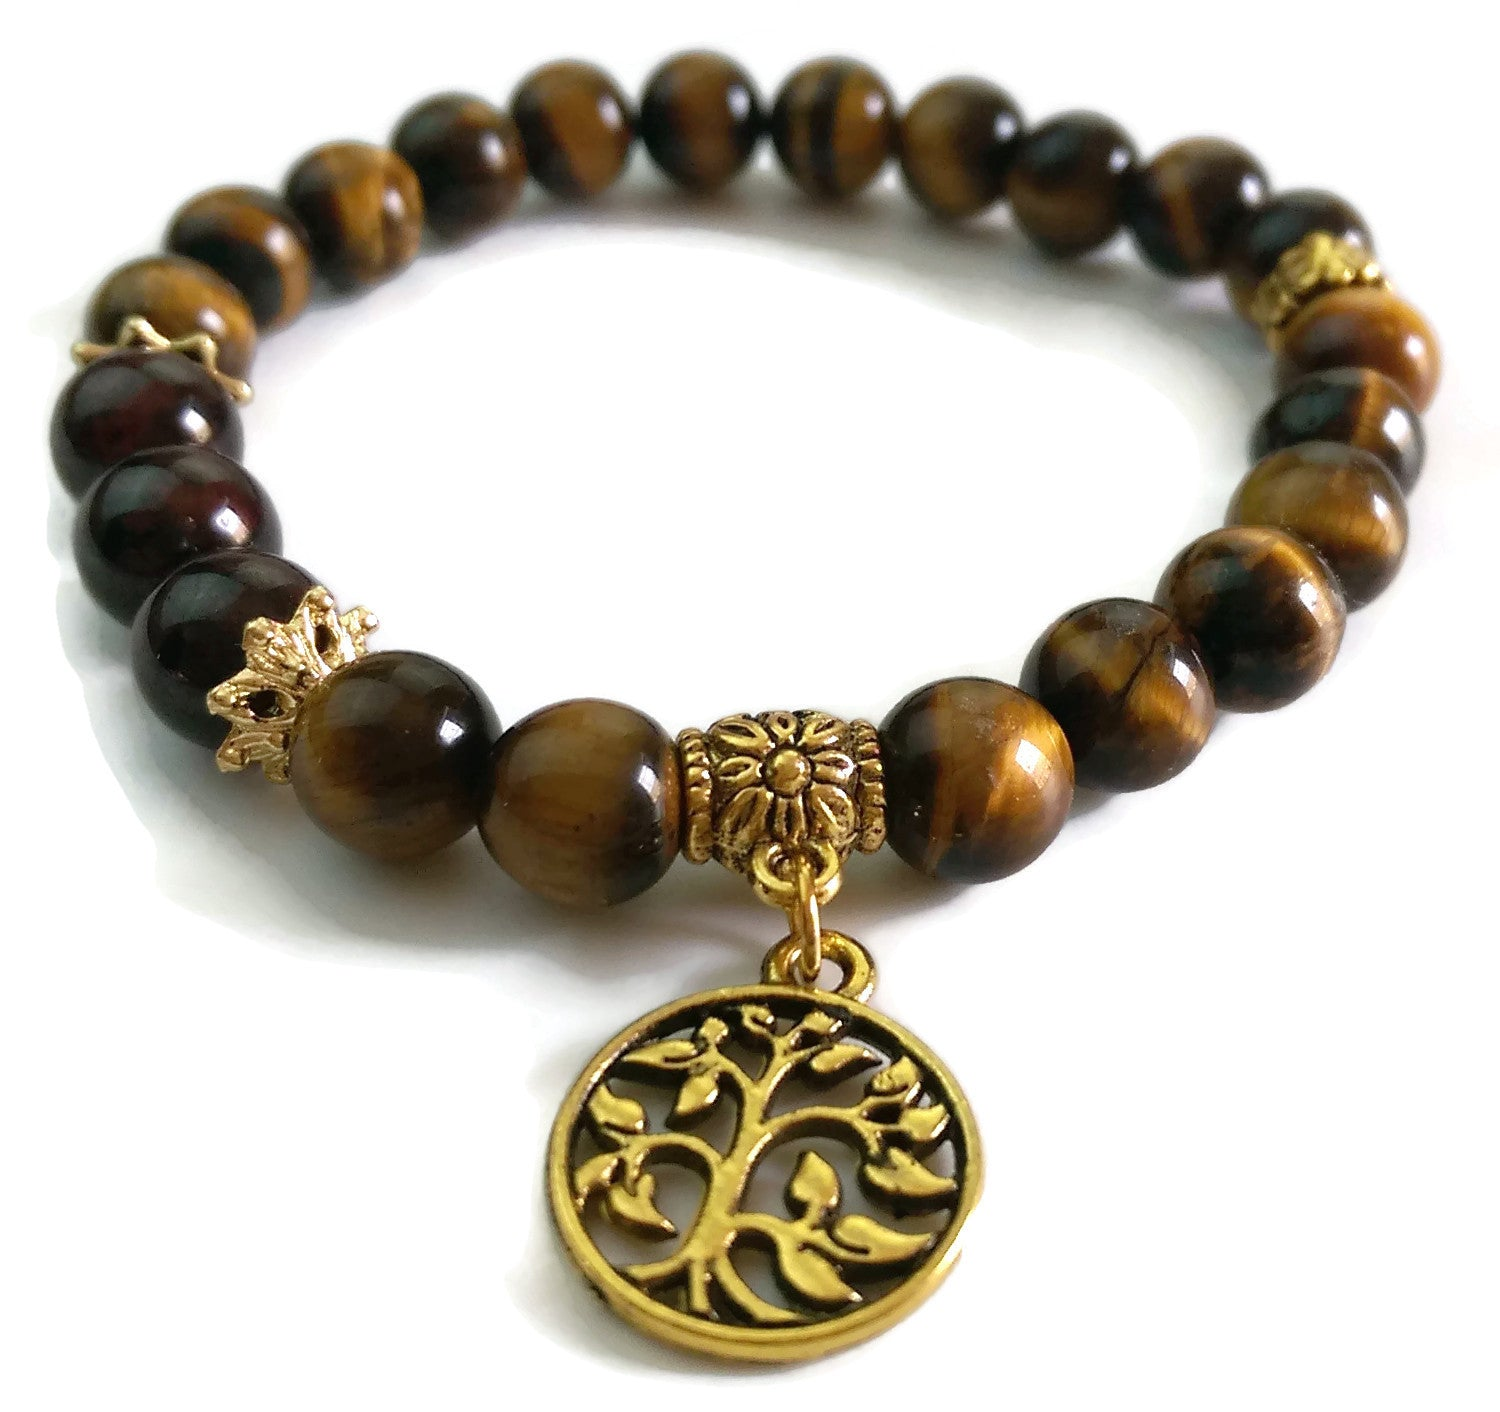 8mm Tigers Eye and Garnet with Gold Tree of Life Charm Yoga Wrist Mala Bracelet